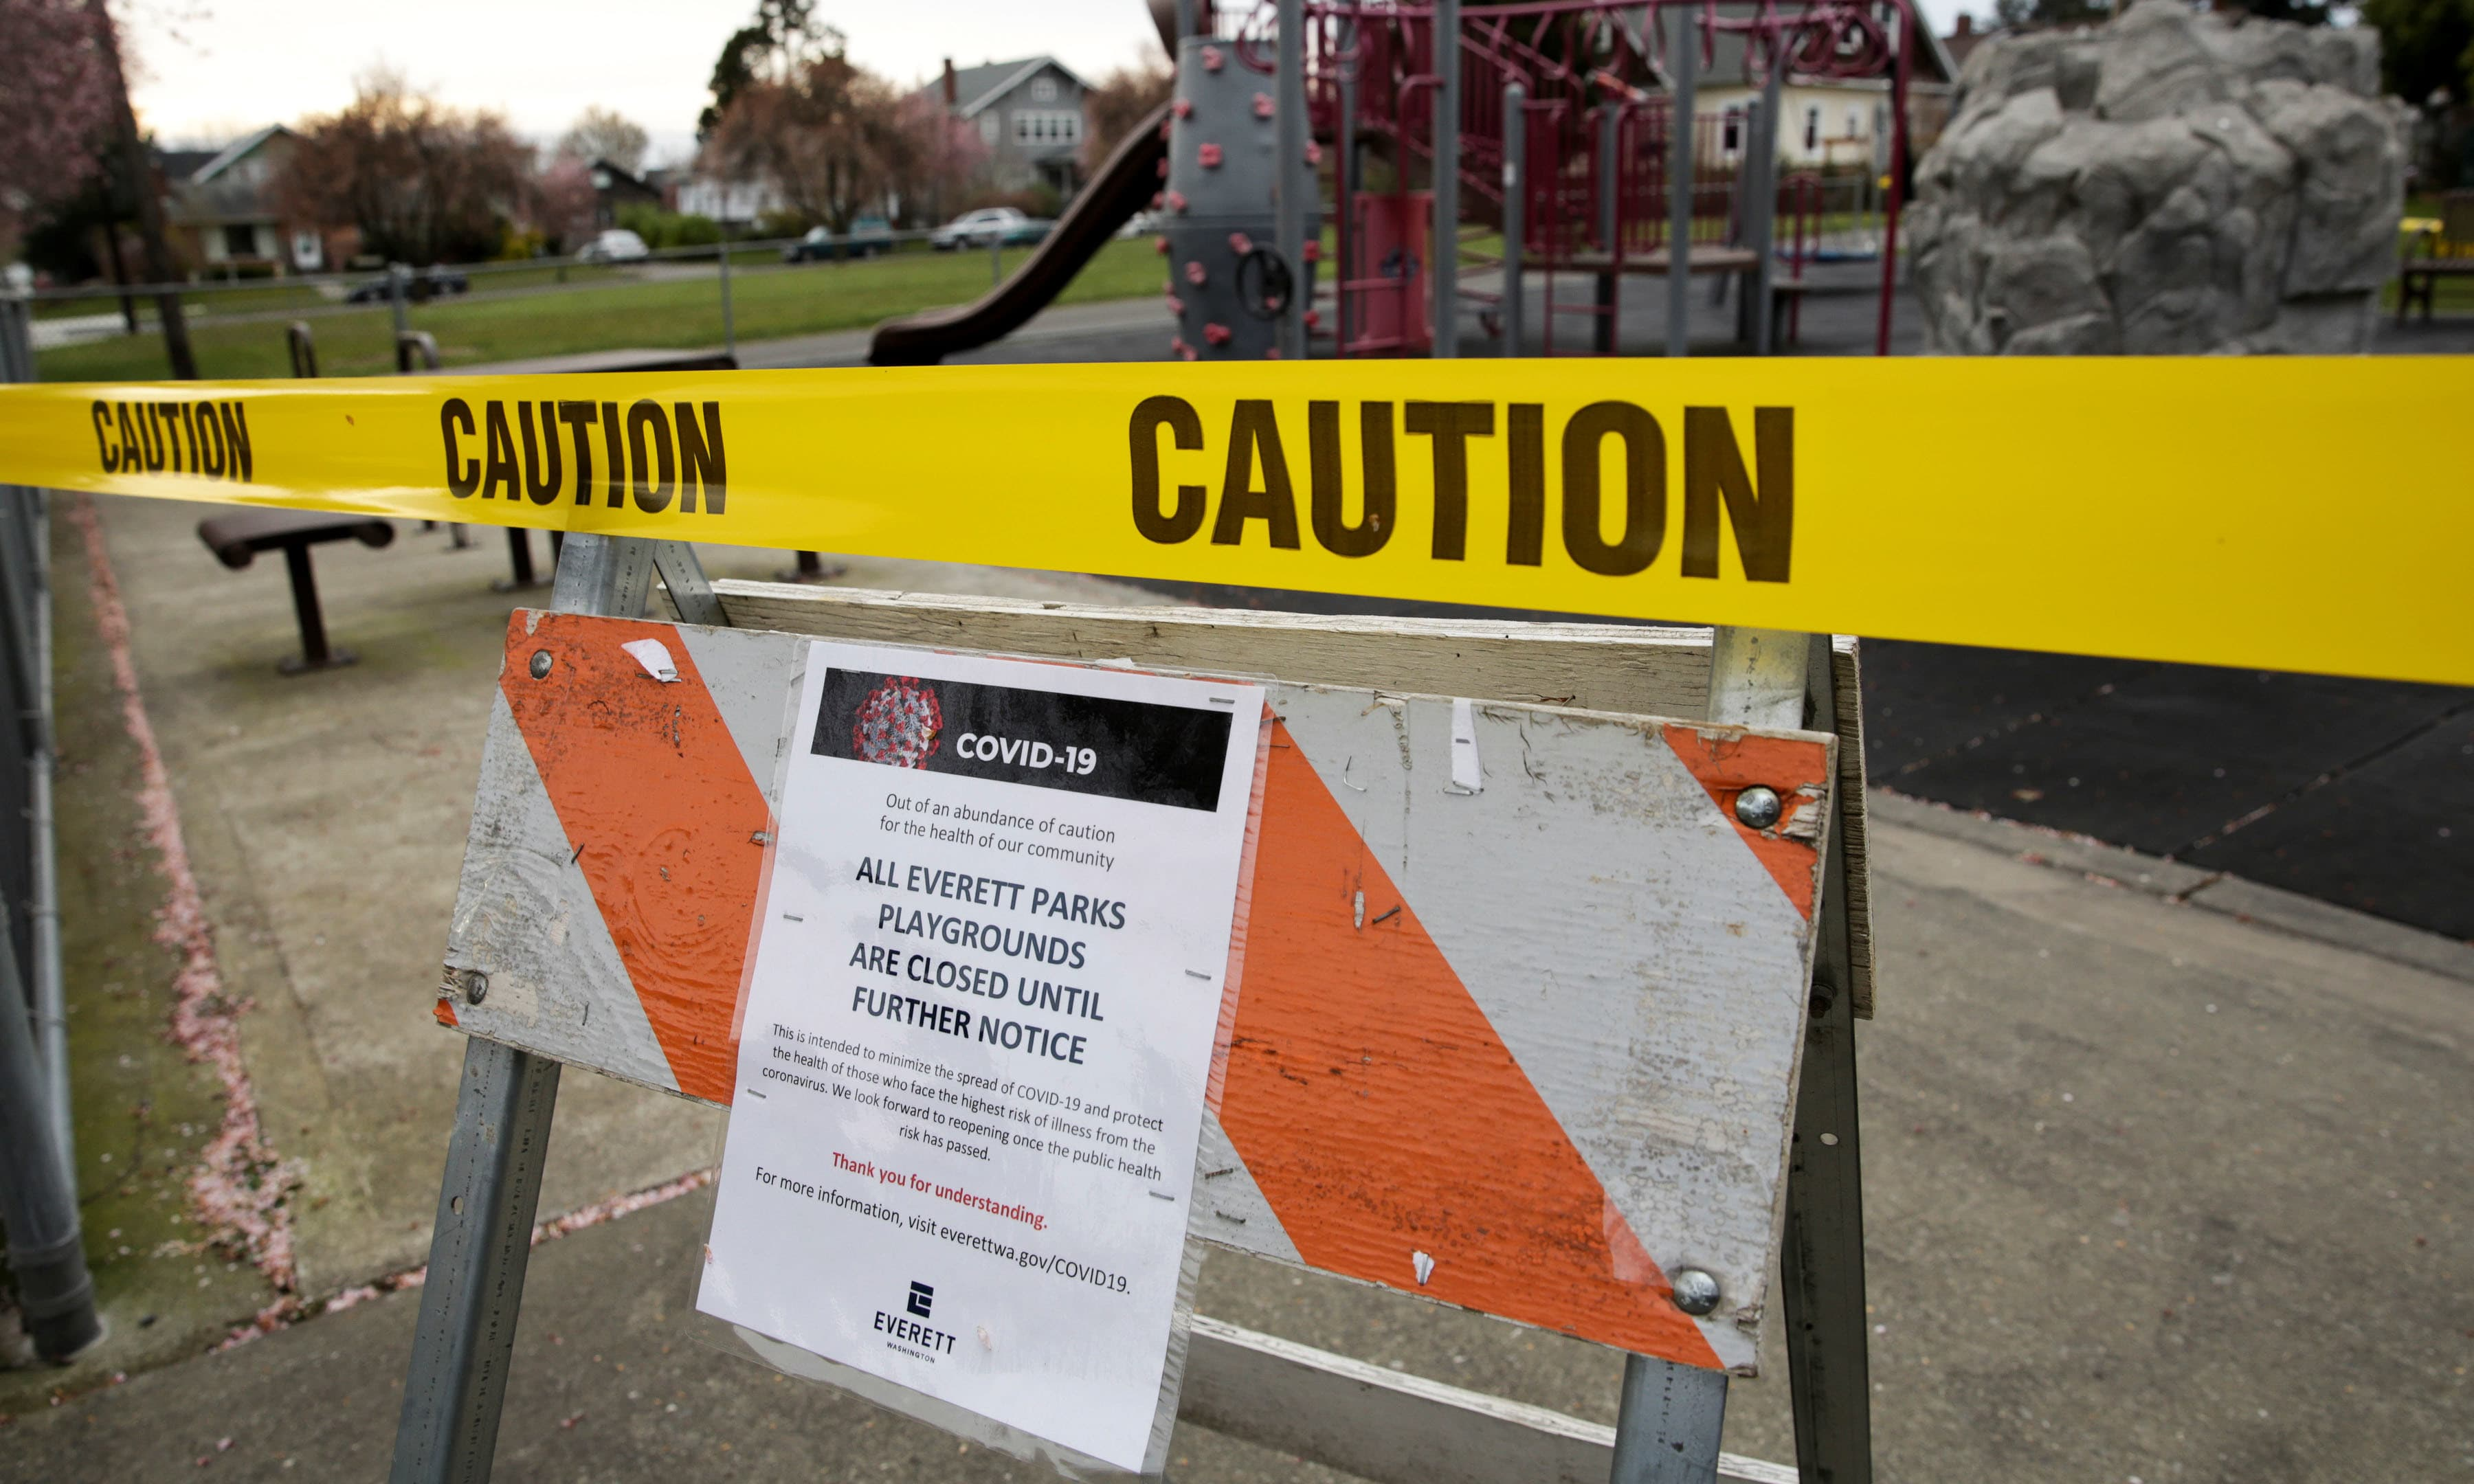 Caution tape is pictured at Drew Nielsen Neighborhood Park after all city park playgrounds were closed as efforts continue to help slow the spread of coronavirus disease in Washington on March 22. — Reuters